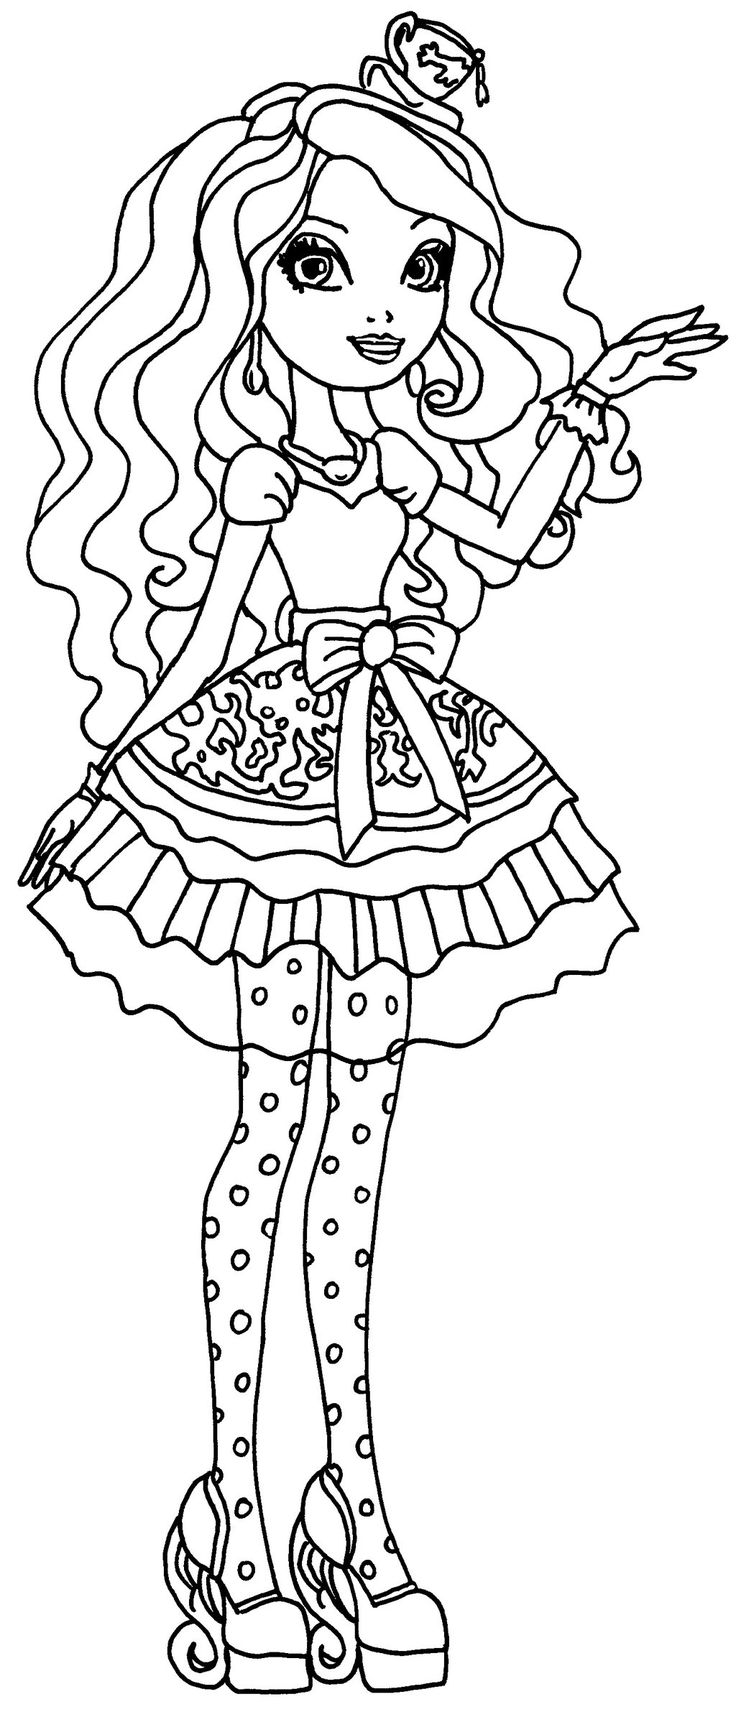 Krafty kidz center curious george coloring pages - Krafty Kidz Center Curious George Coloring Pages Find This Pin And More On Silke Tegninger Download